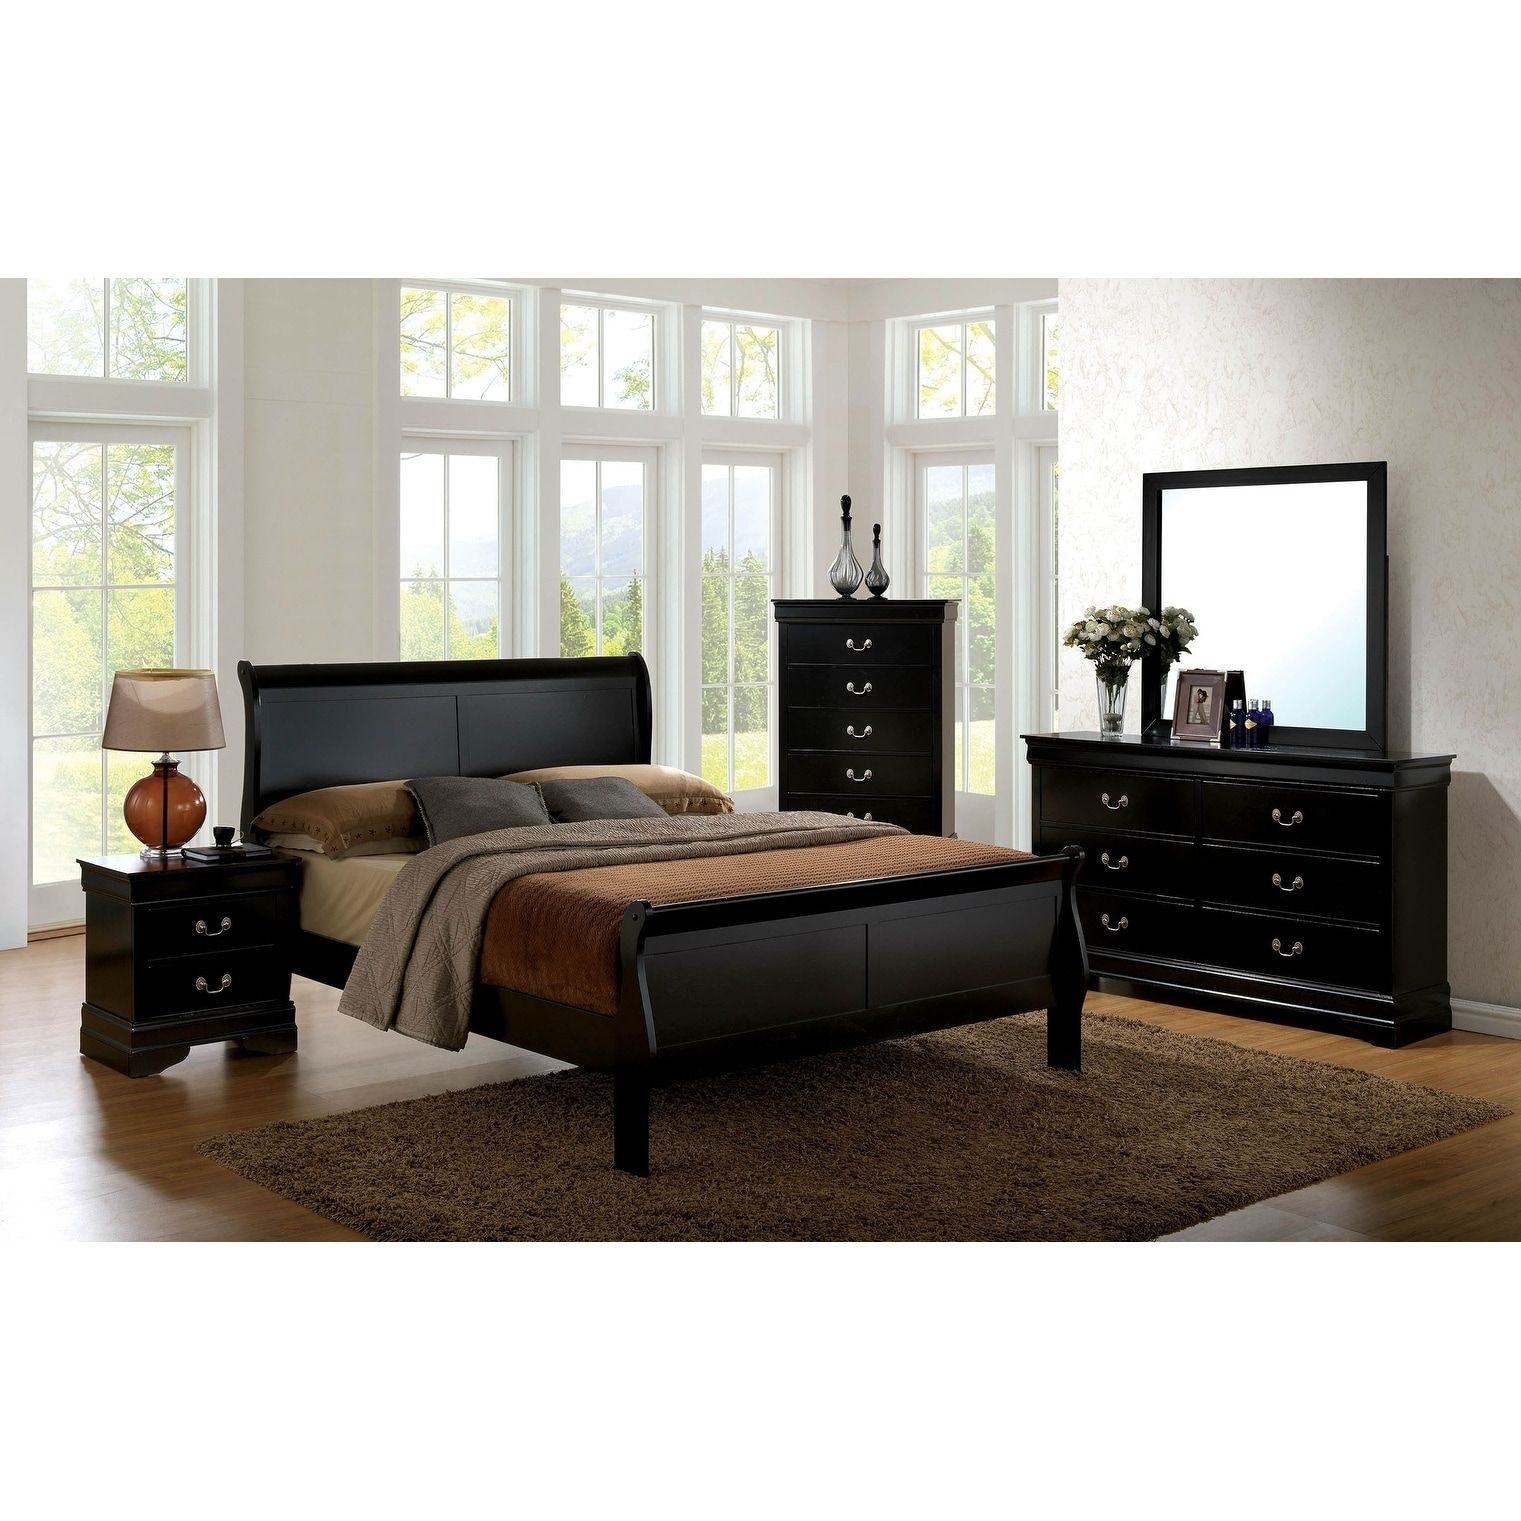 Williams Home Furnishing Louis Philippe Iii Cal King Bed In Black On Sale Overstock 28913103